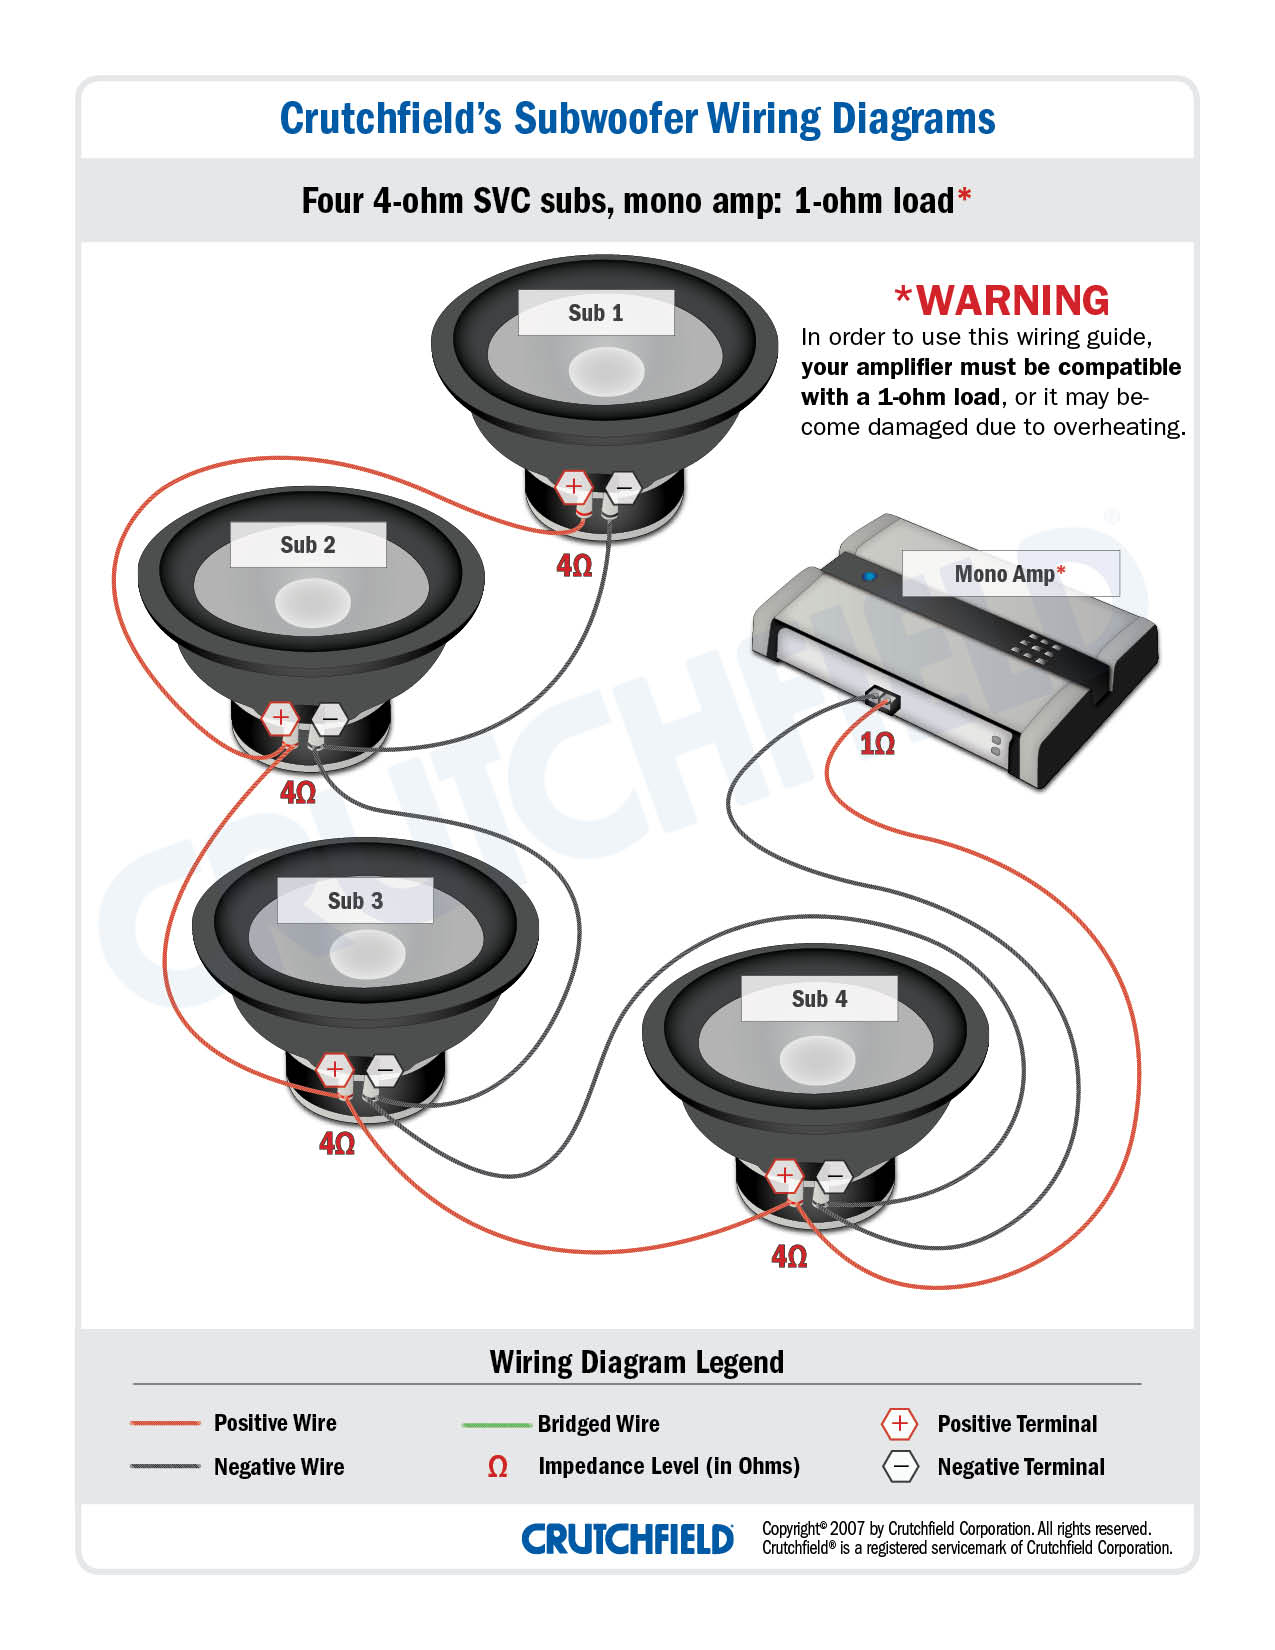 subwoofer wiring diagrams \u2014 how to wire your subs Wiring 2 Ohm Impedance Speaker janis, i\u0027m not familiar with those products, but generally speaking, four svc 4 ohm subs can be wired to an amplifier that can handle a 1 ohm load